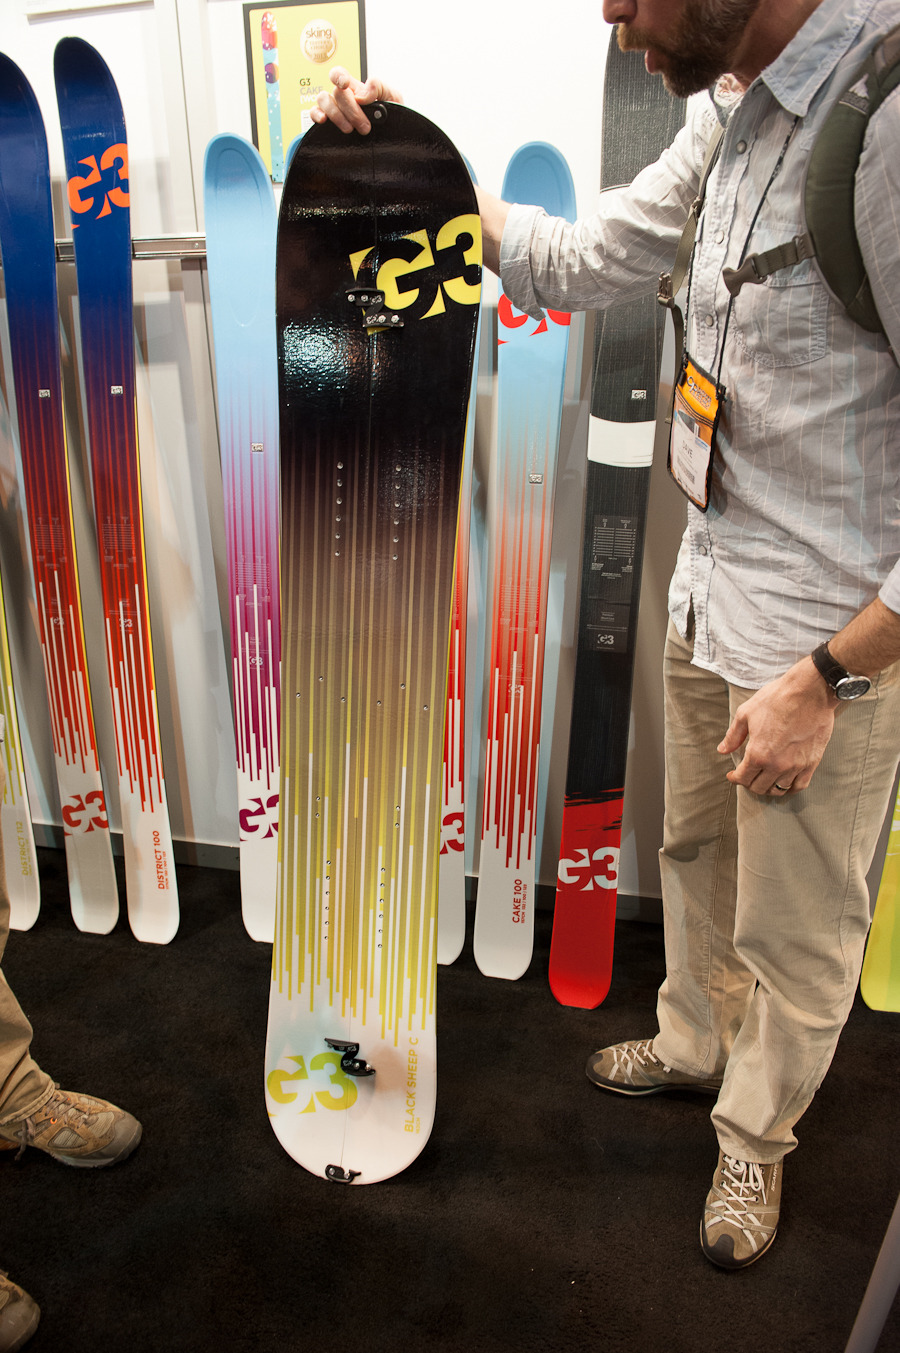 The G3 Splitboard is for those snowboarders looking to travel into the backcountry. - © Ashleigh Miller Photography